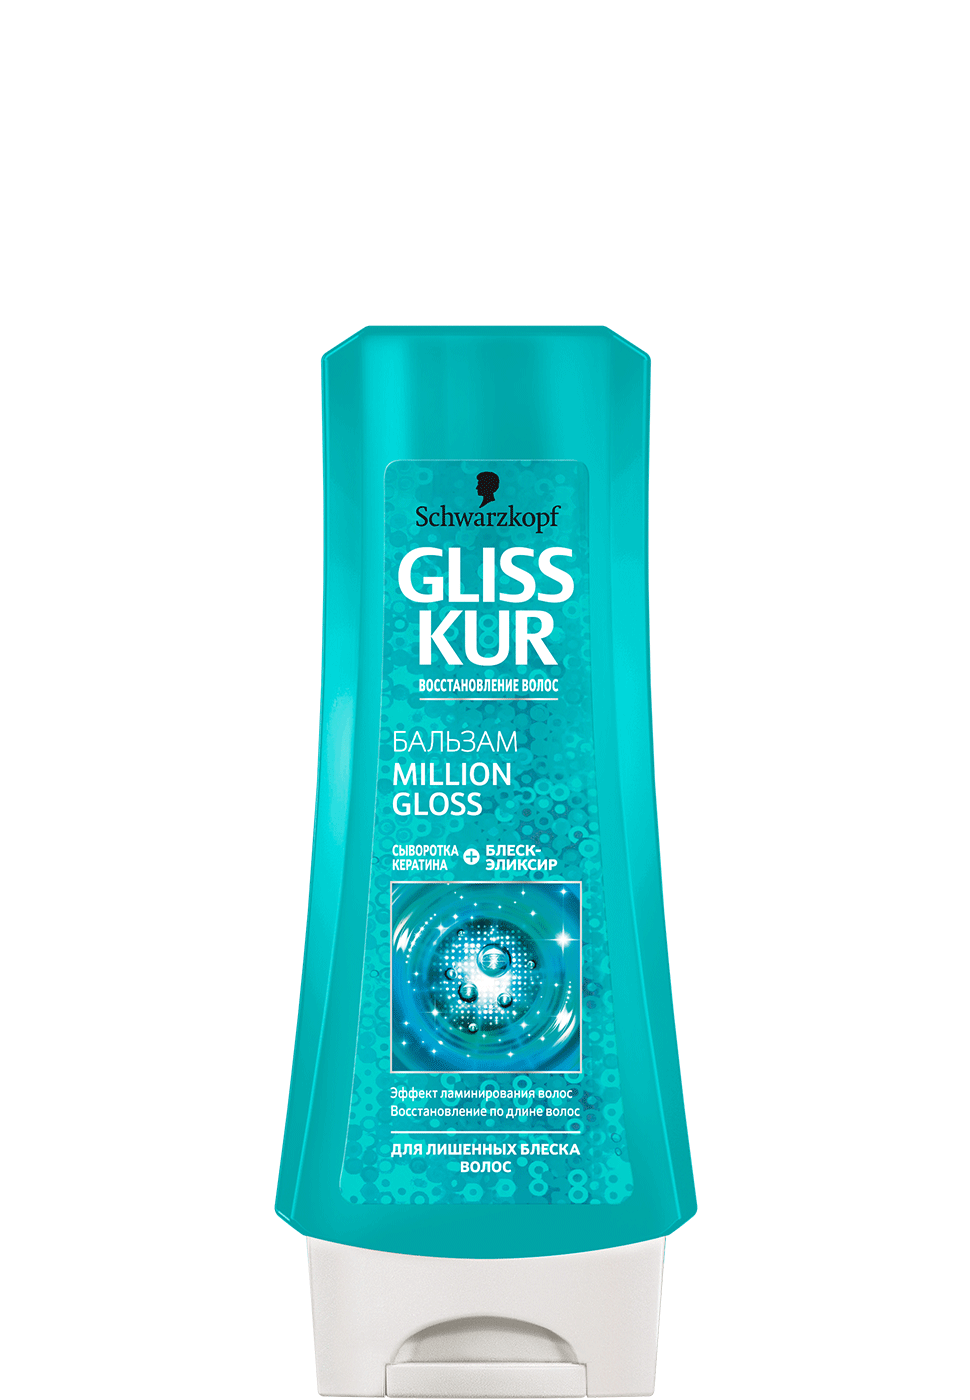 Бальзам Gliss Kur Million Gloss